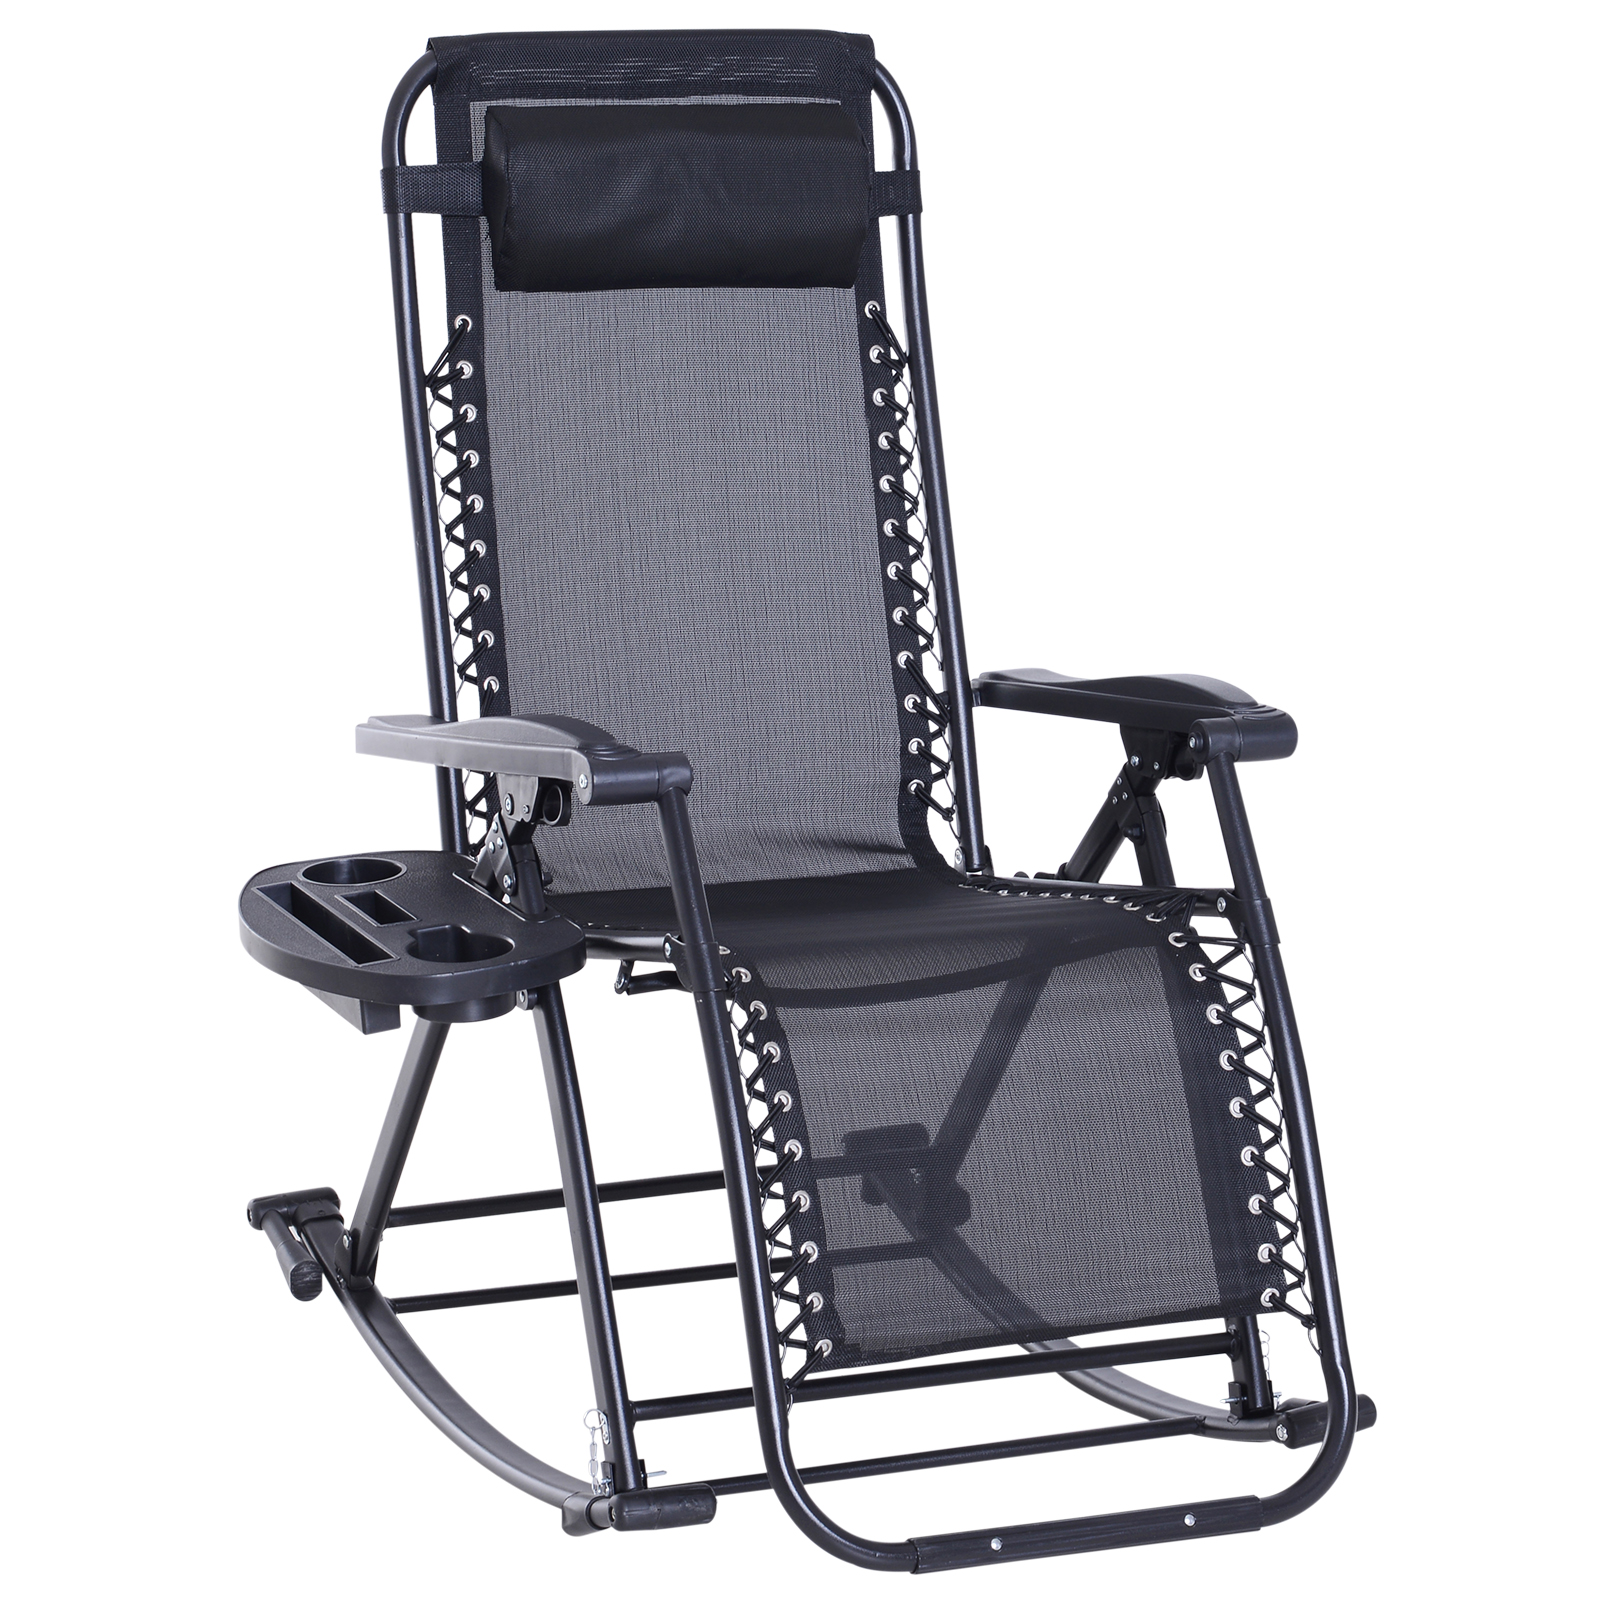 Outsunny Folding Zero Gravity Rocking Lounge Chair with Cup Holder